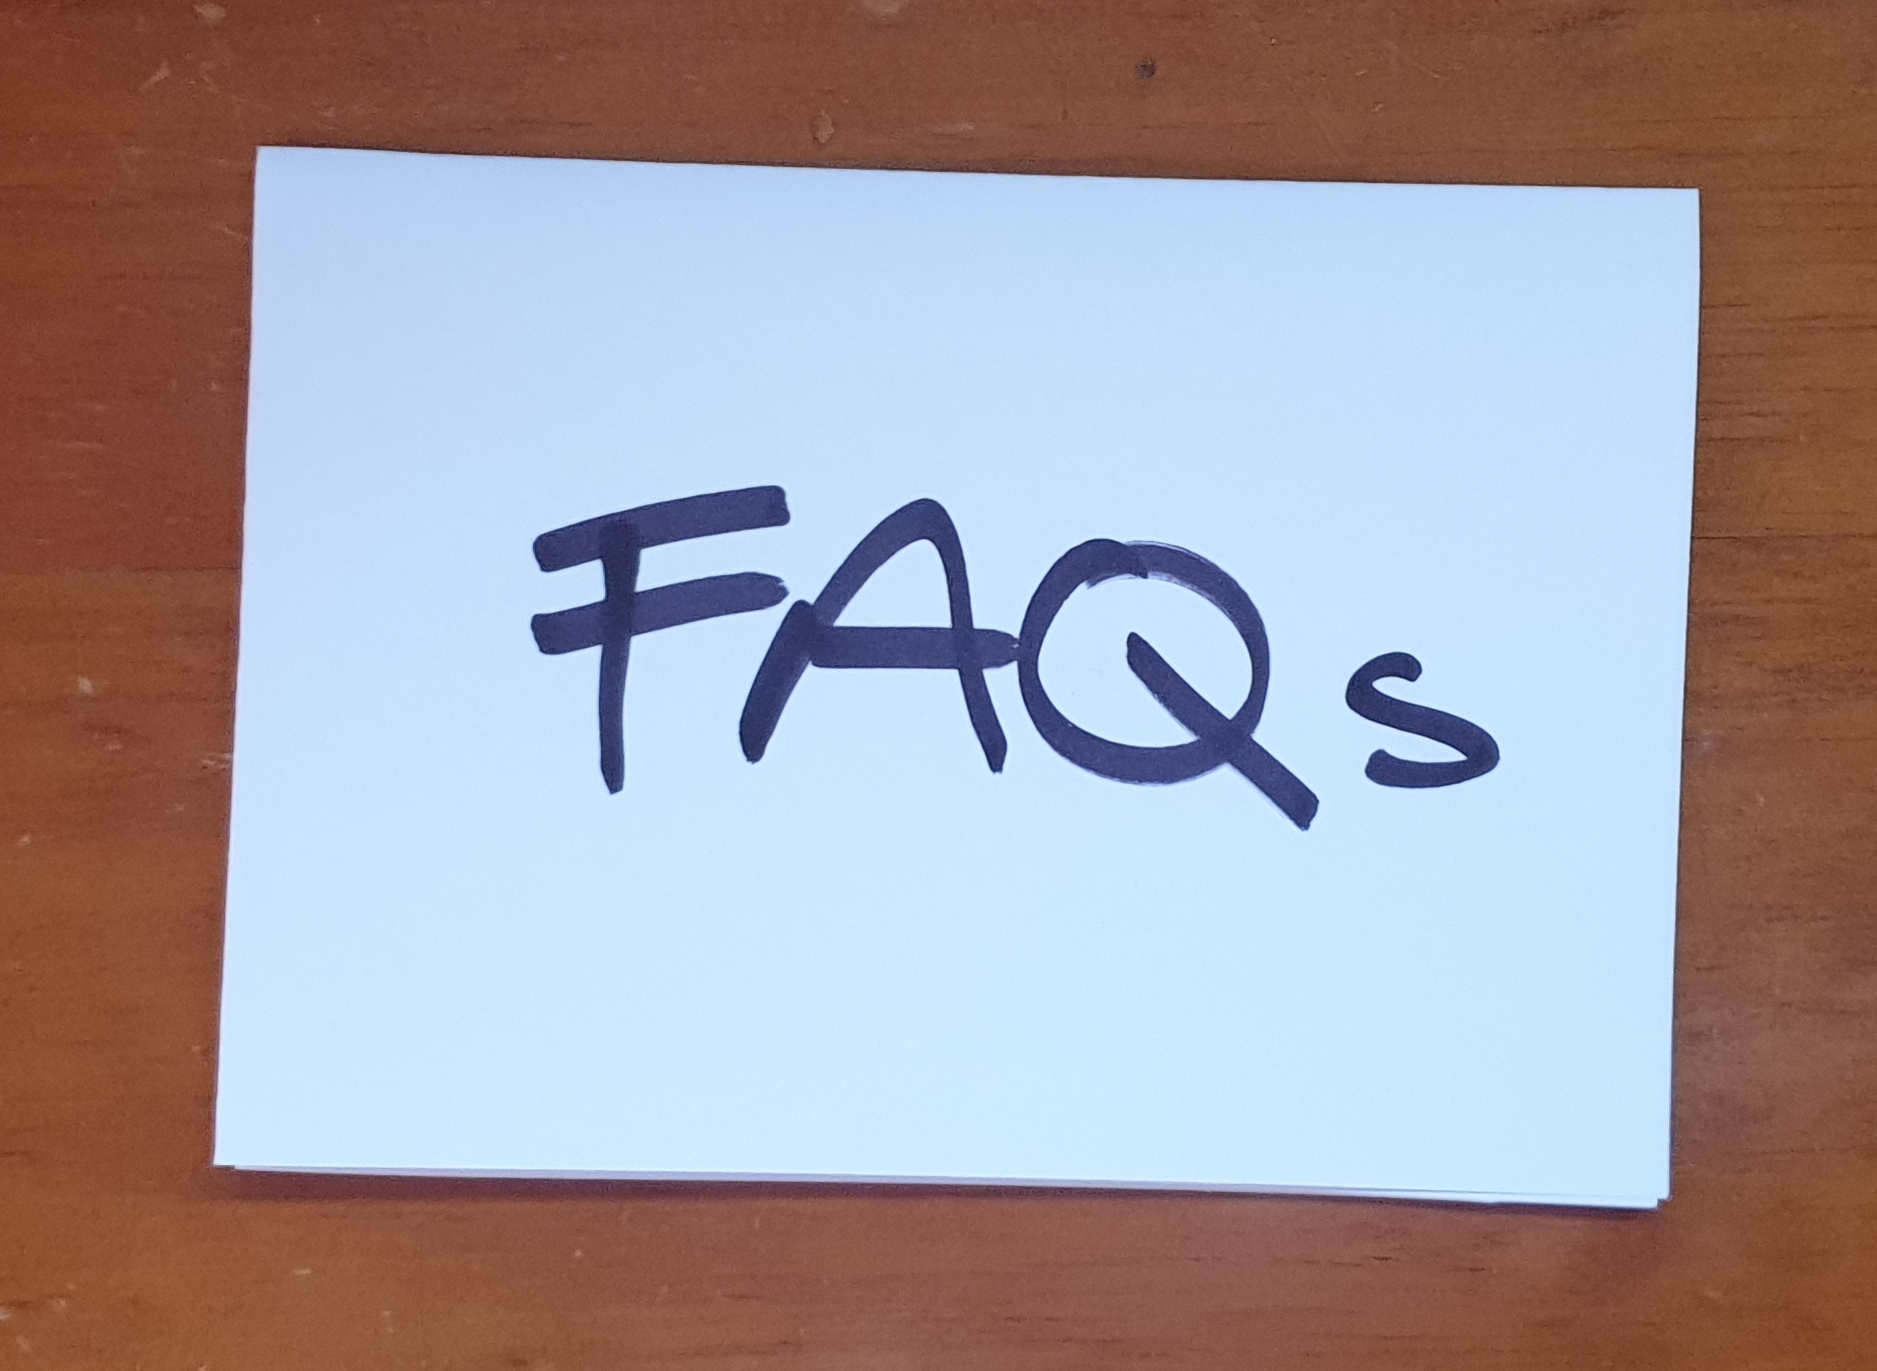 FAQs note on wooden desk